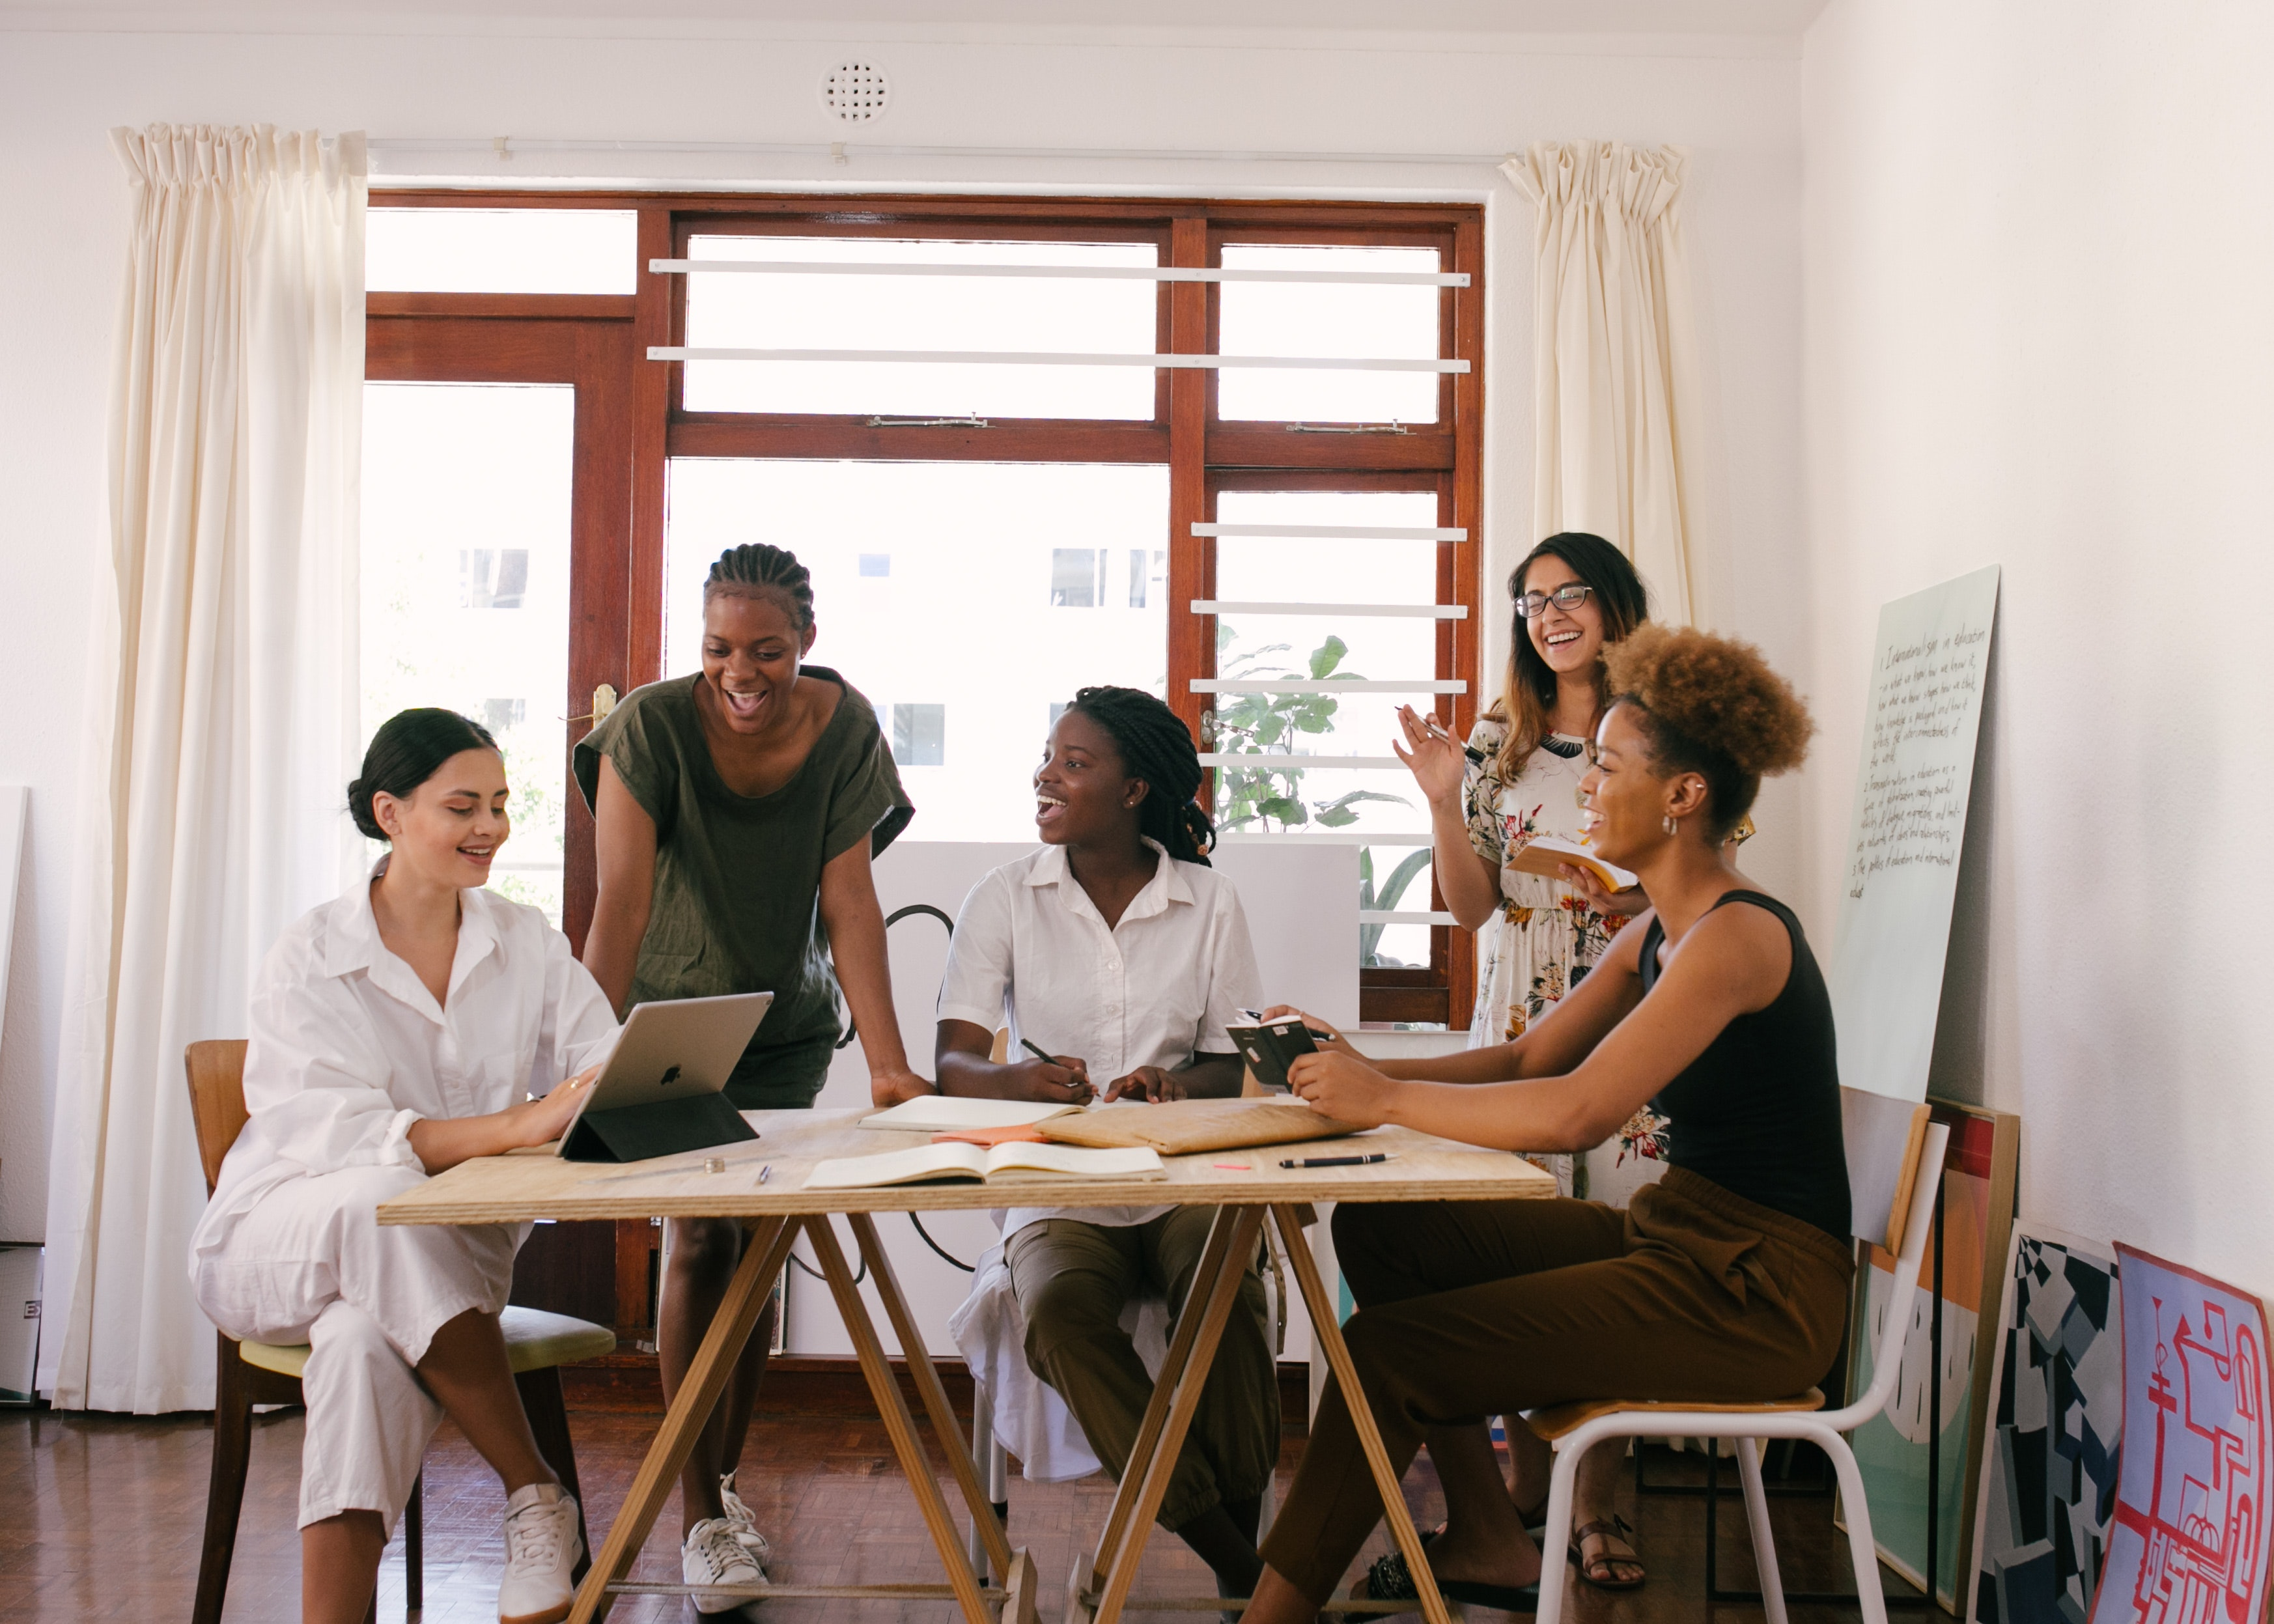 group-of-women-having-a-meeting-3810754